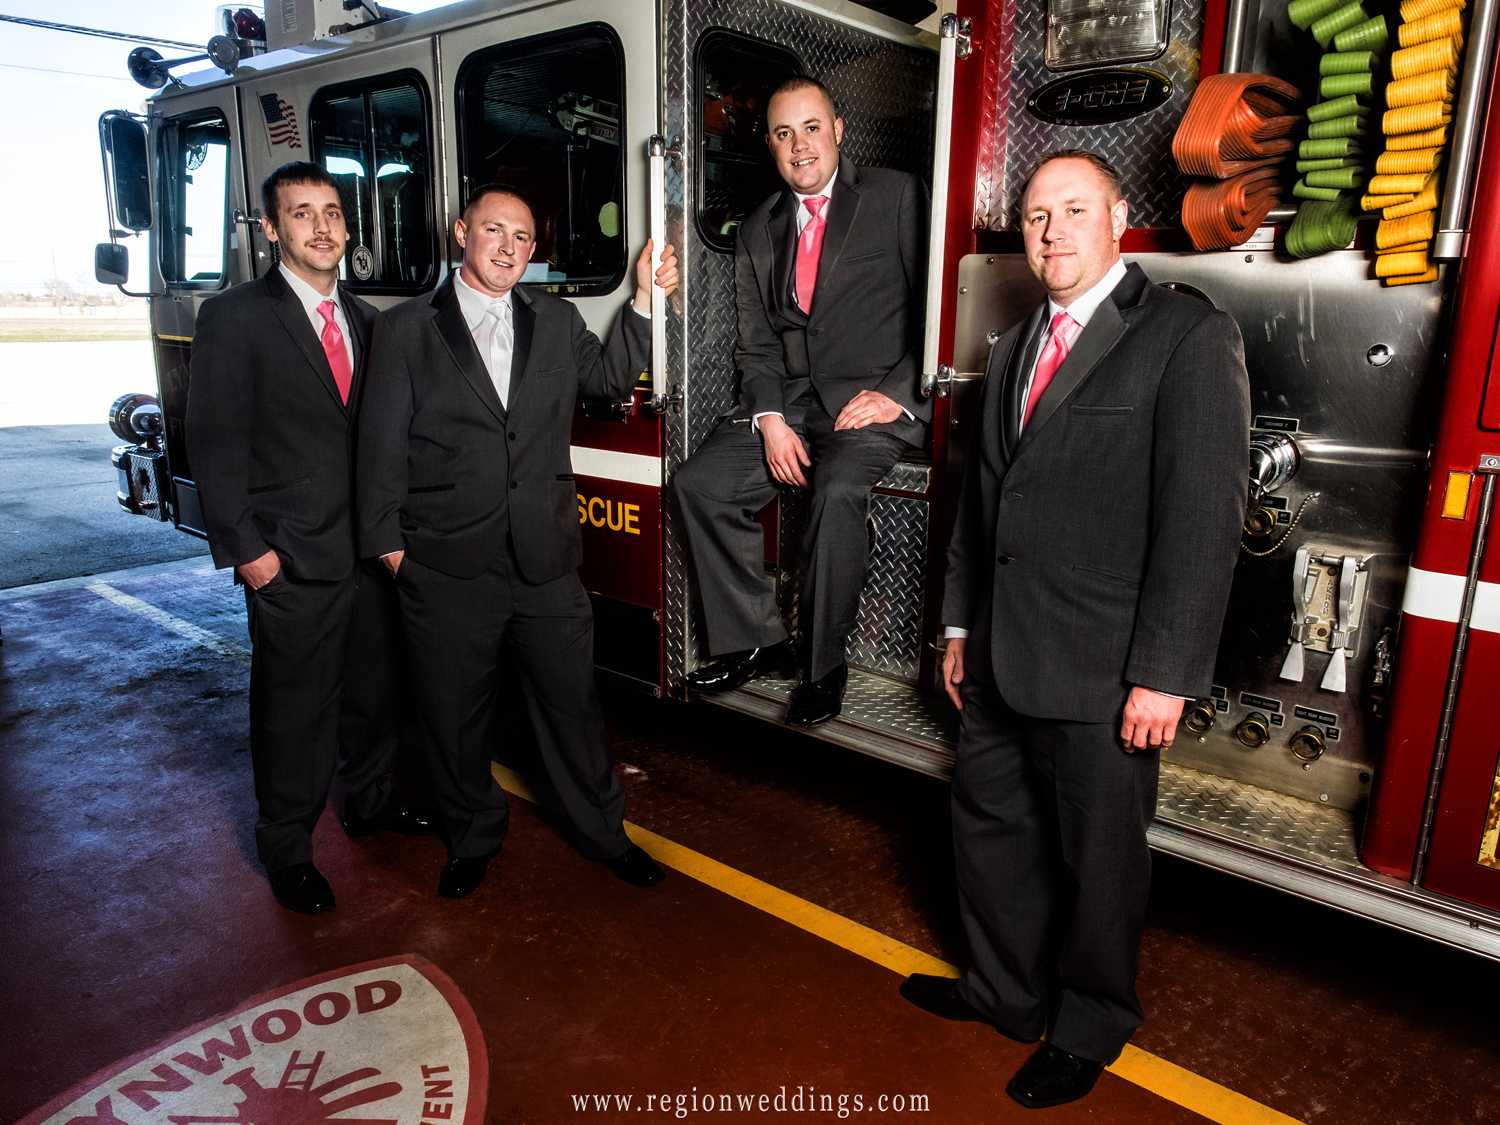 A group of fireman on their friends wedding day in front of a fire truck at the Lynwood station.